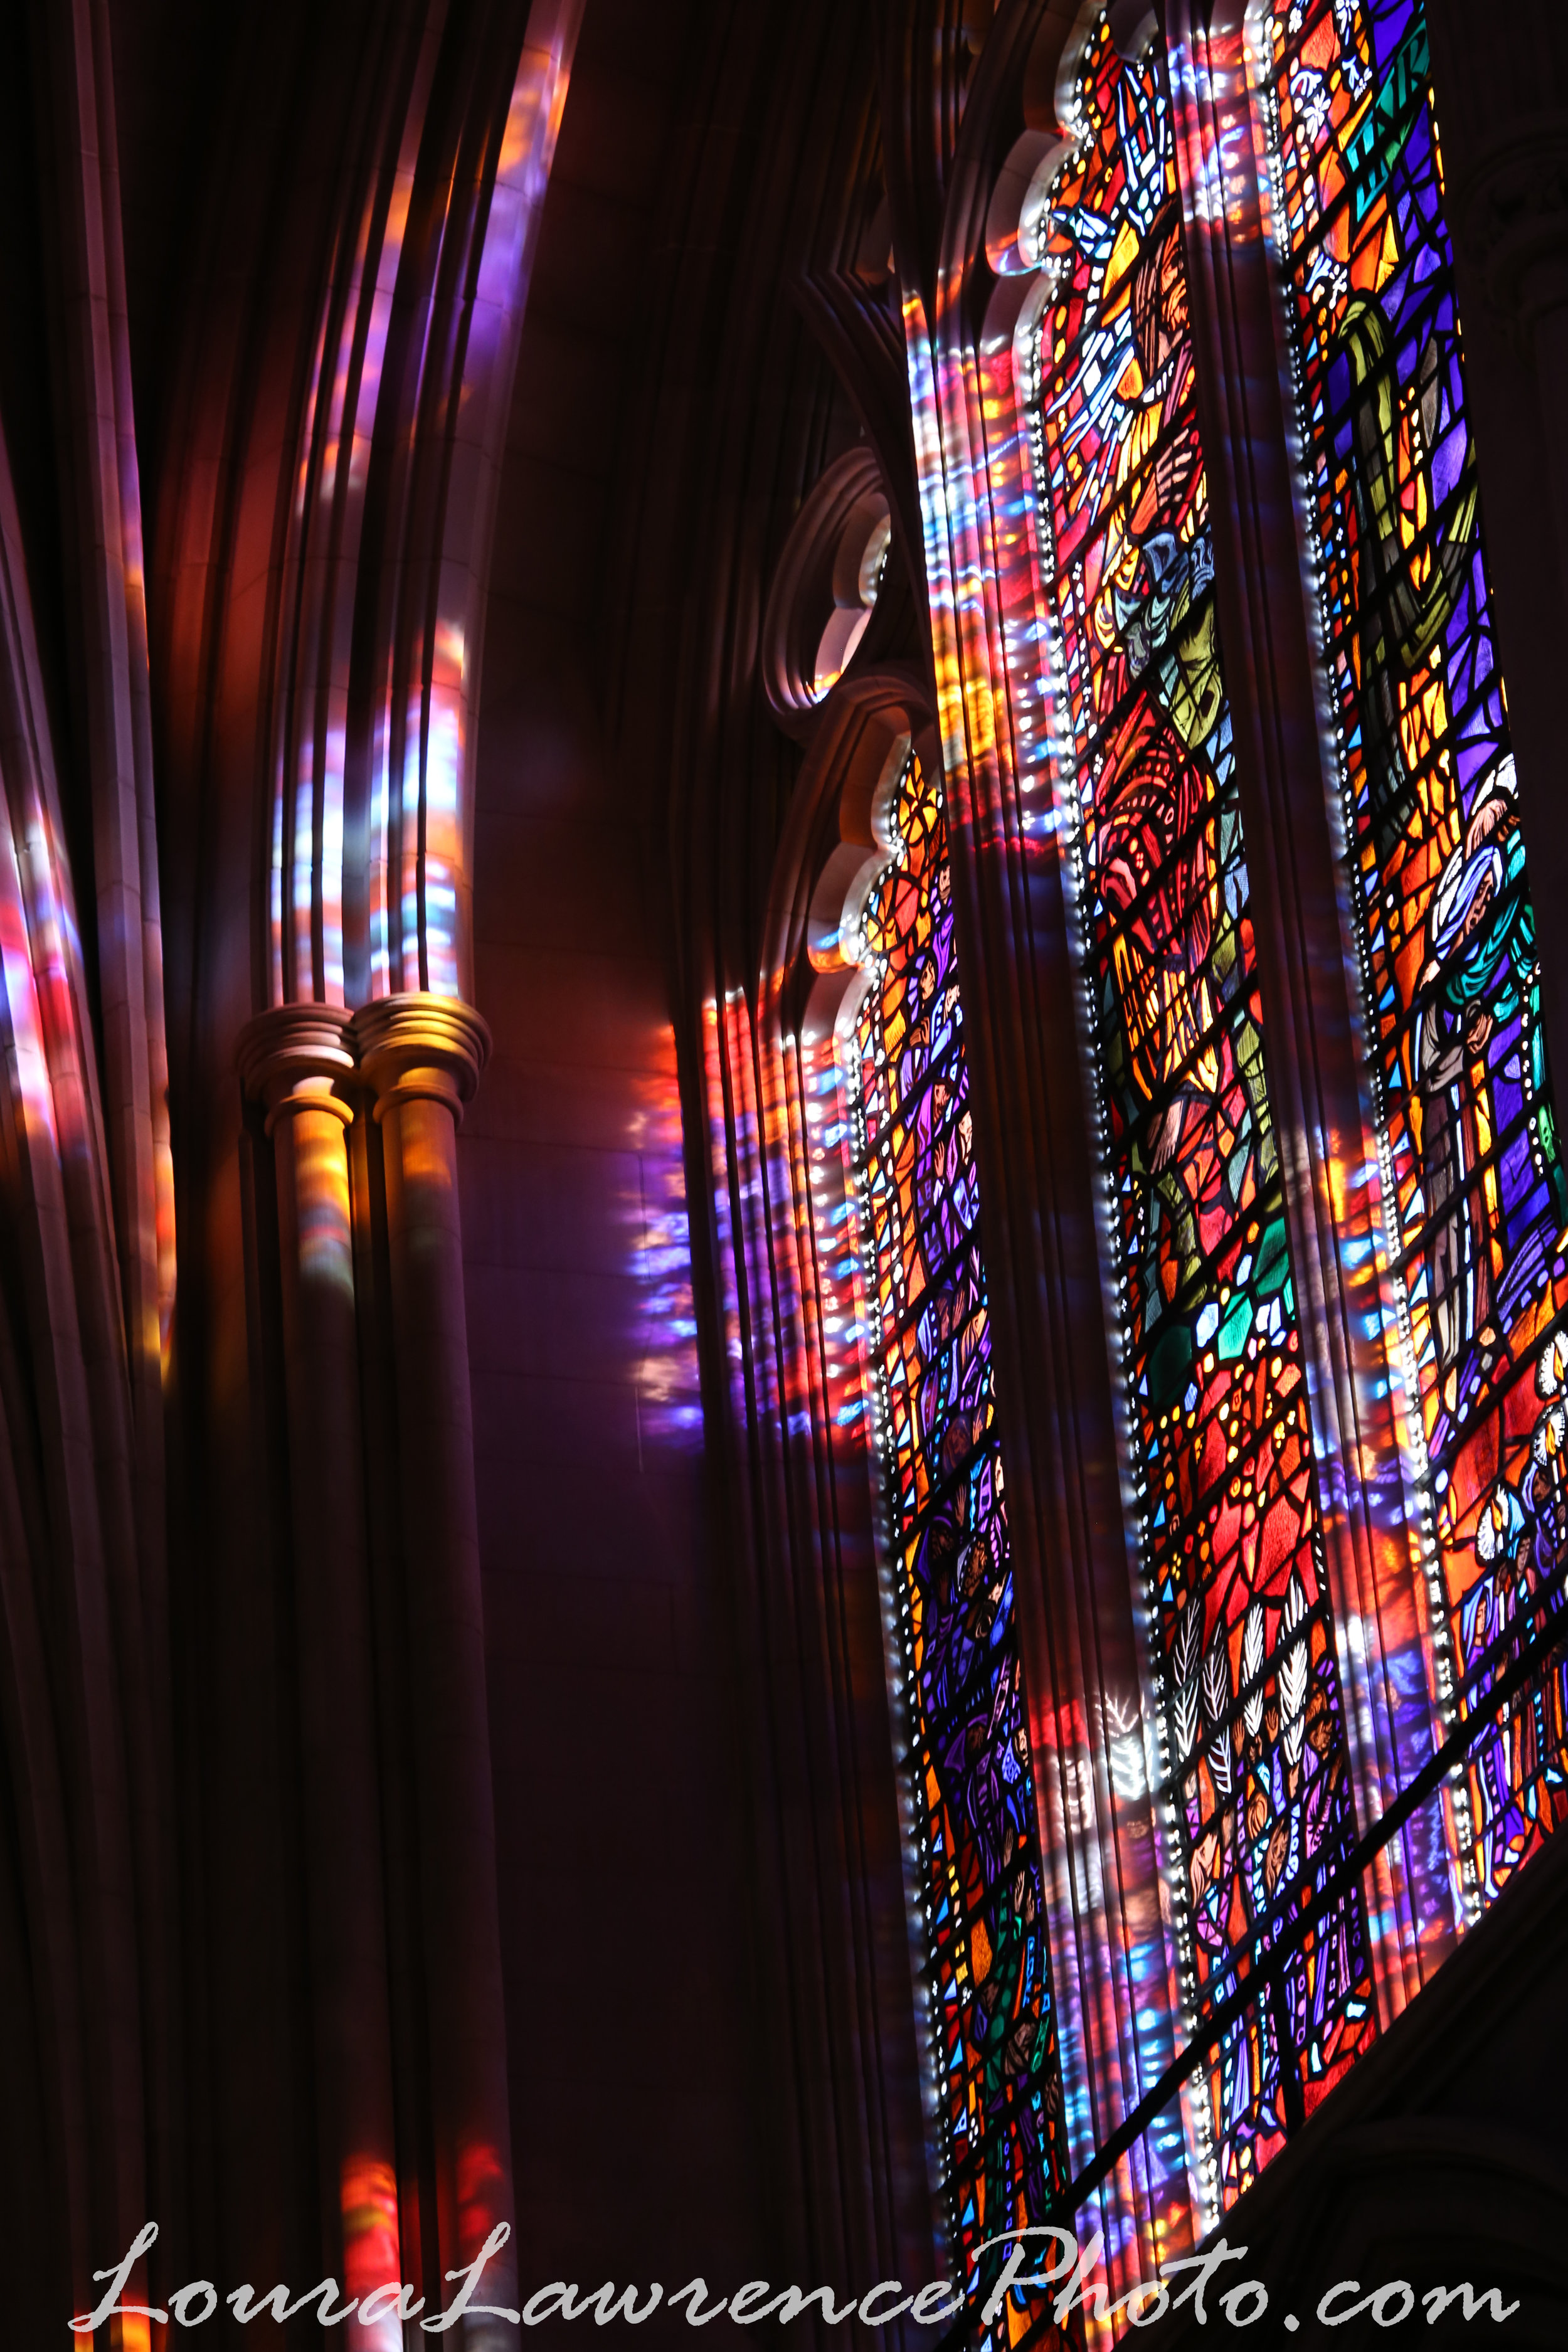 Stained glass windows at The National Cathedral, Washington D.C.